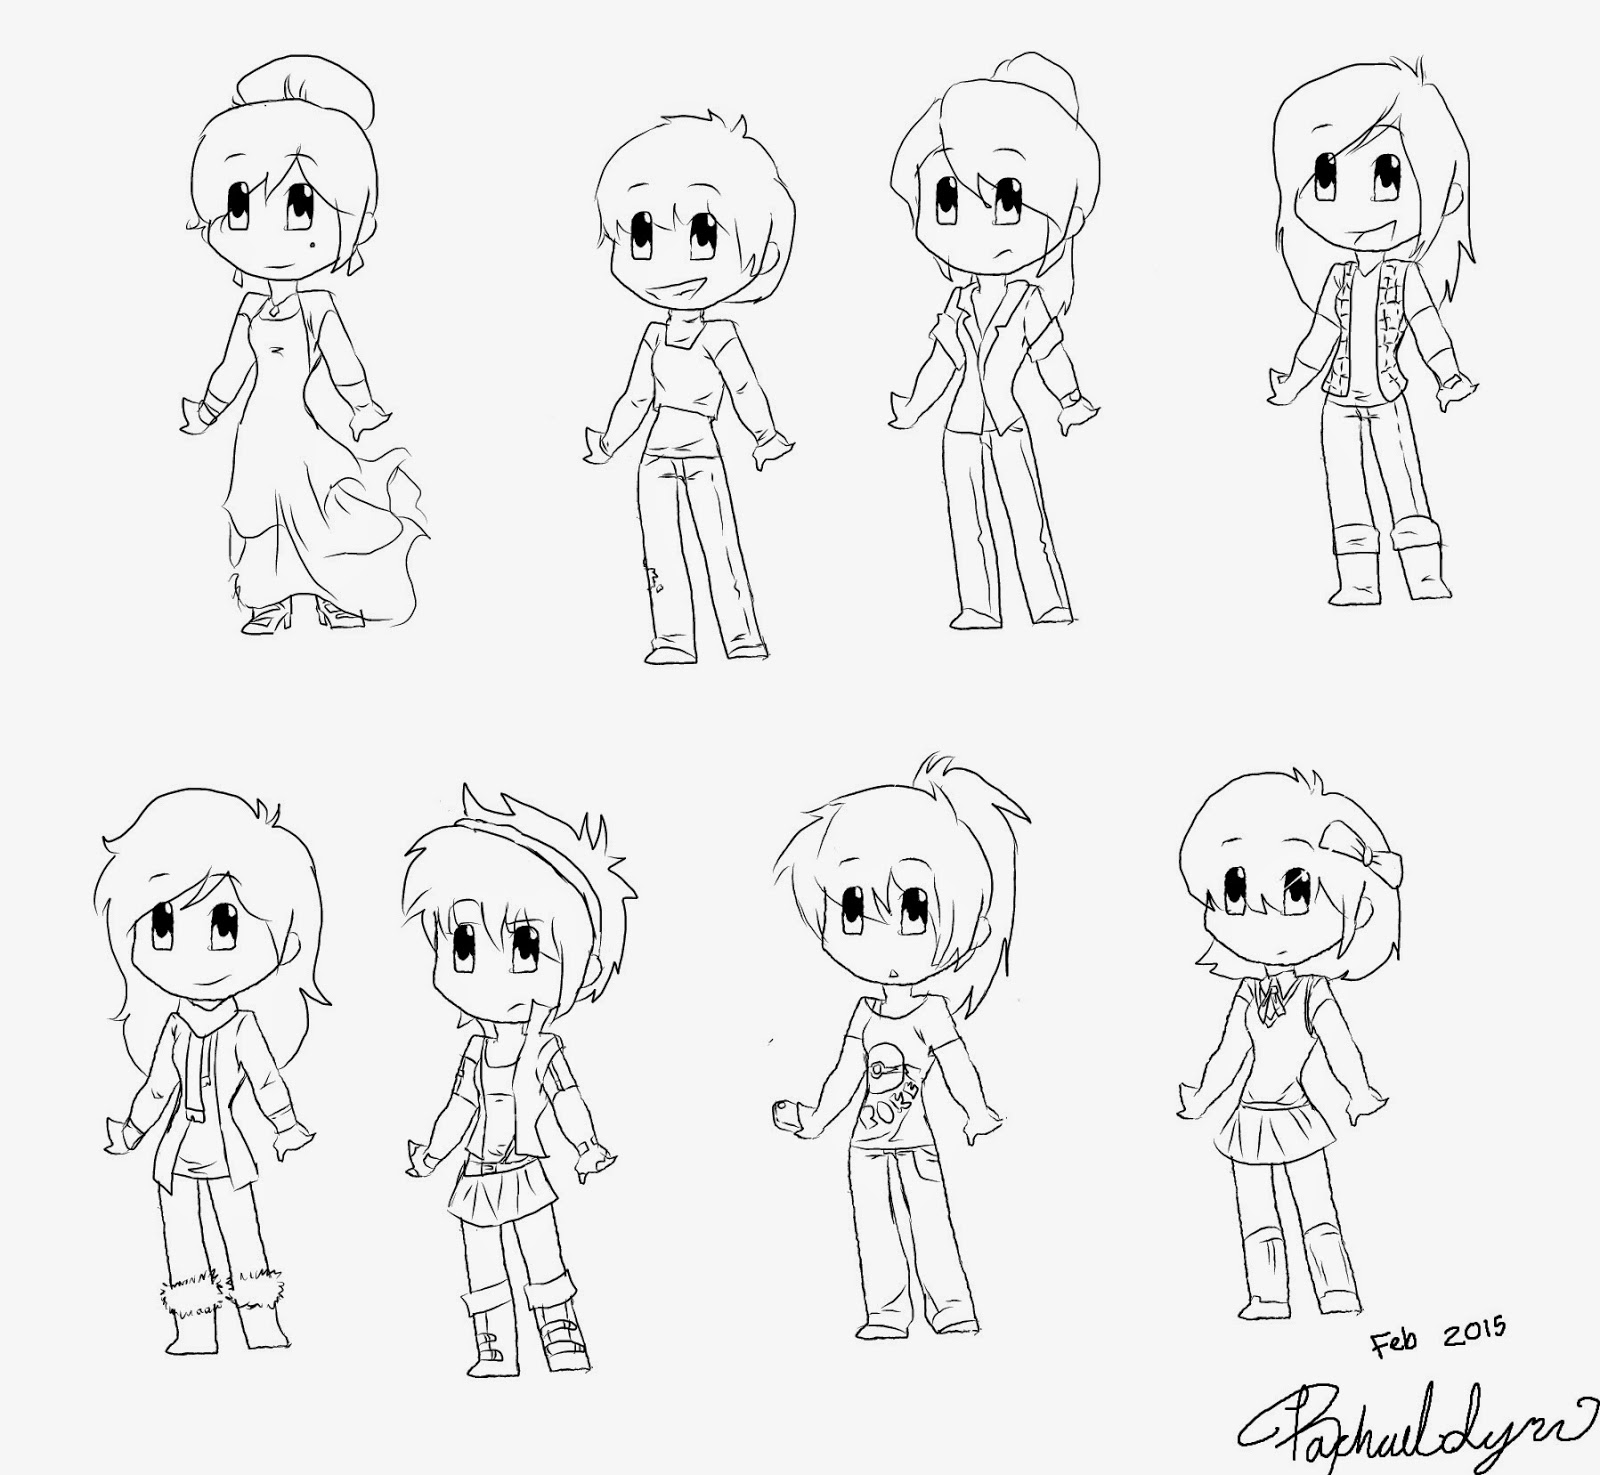 It's just an image of Vibrant Chibi Style Drawing